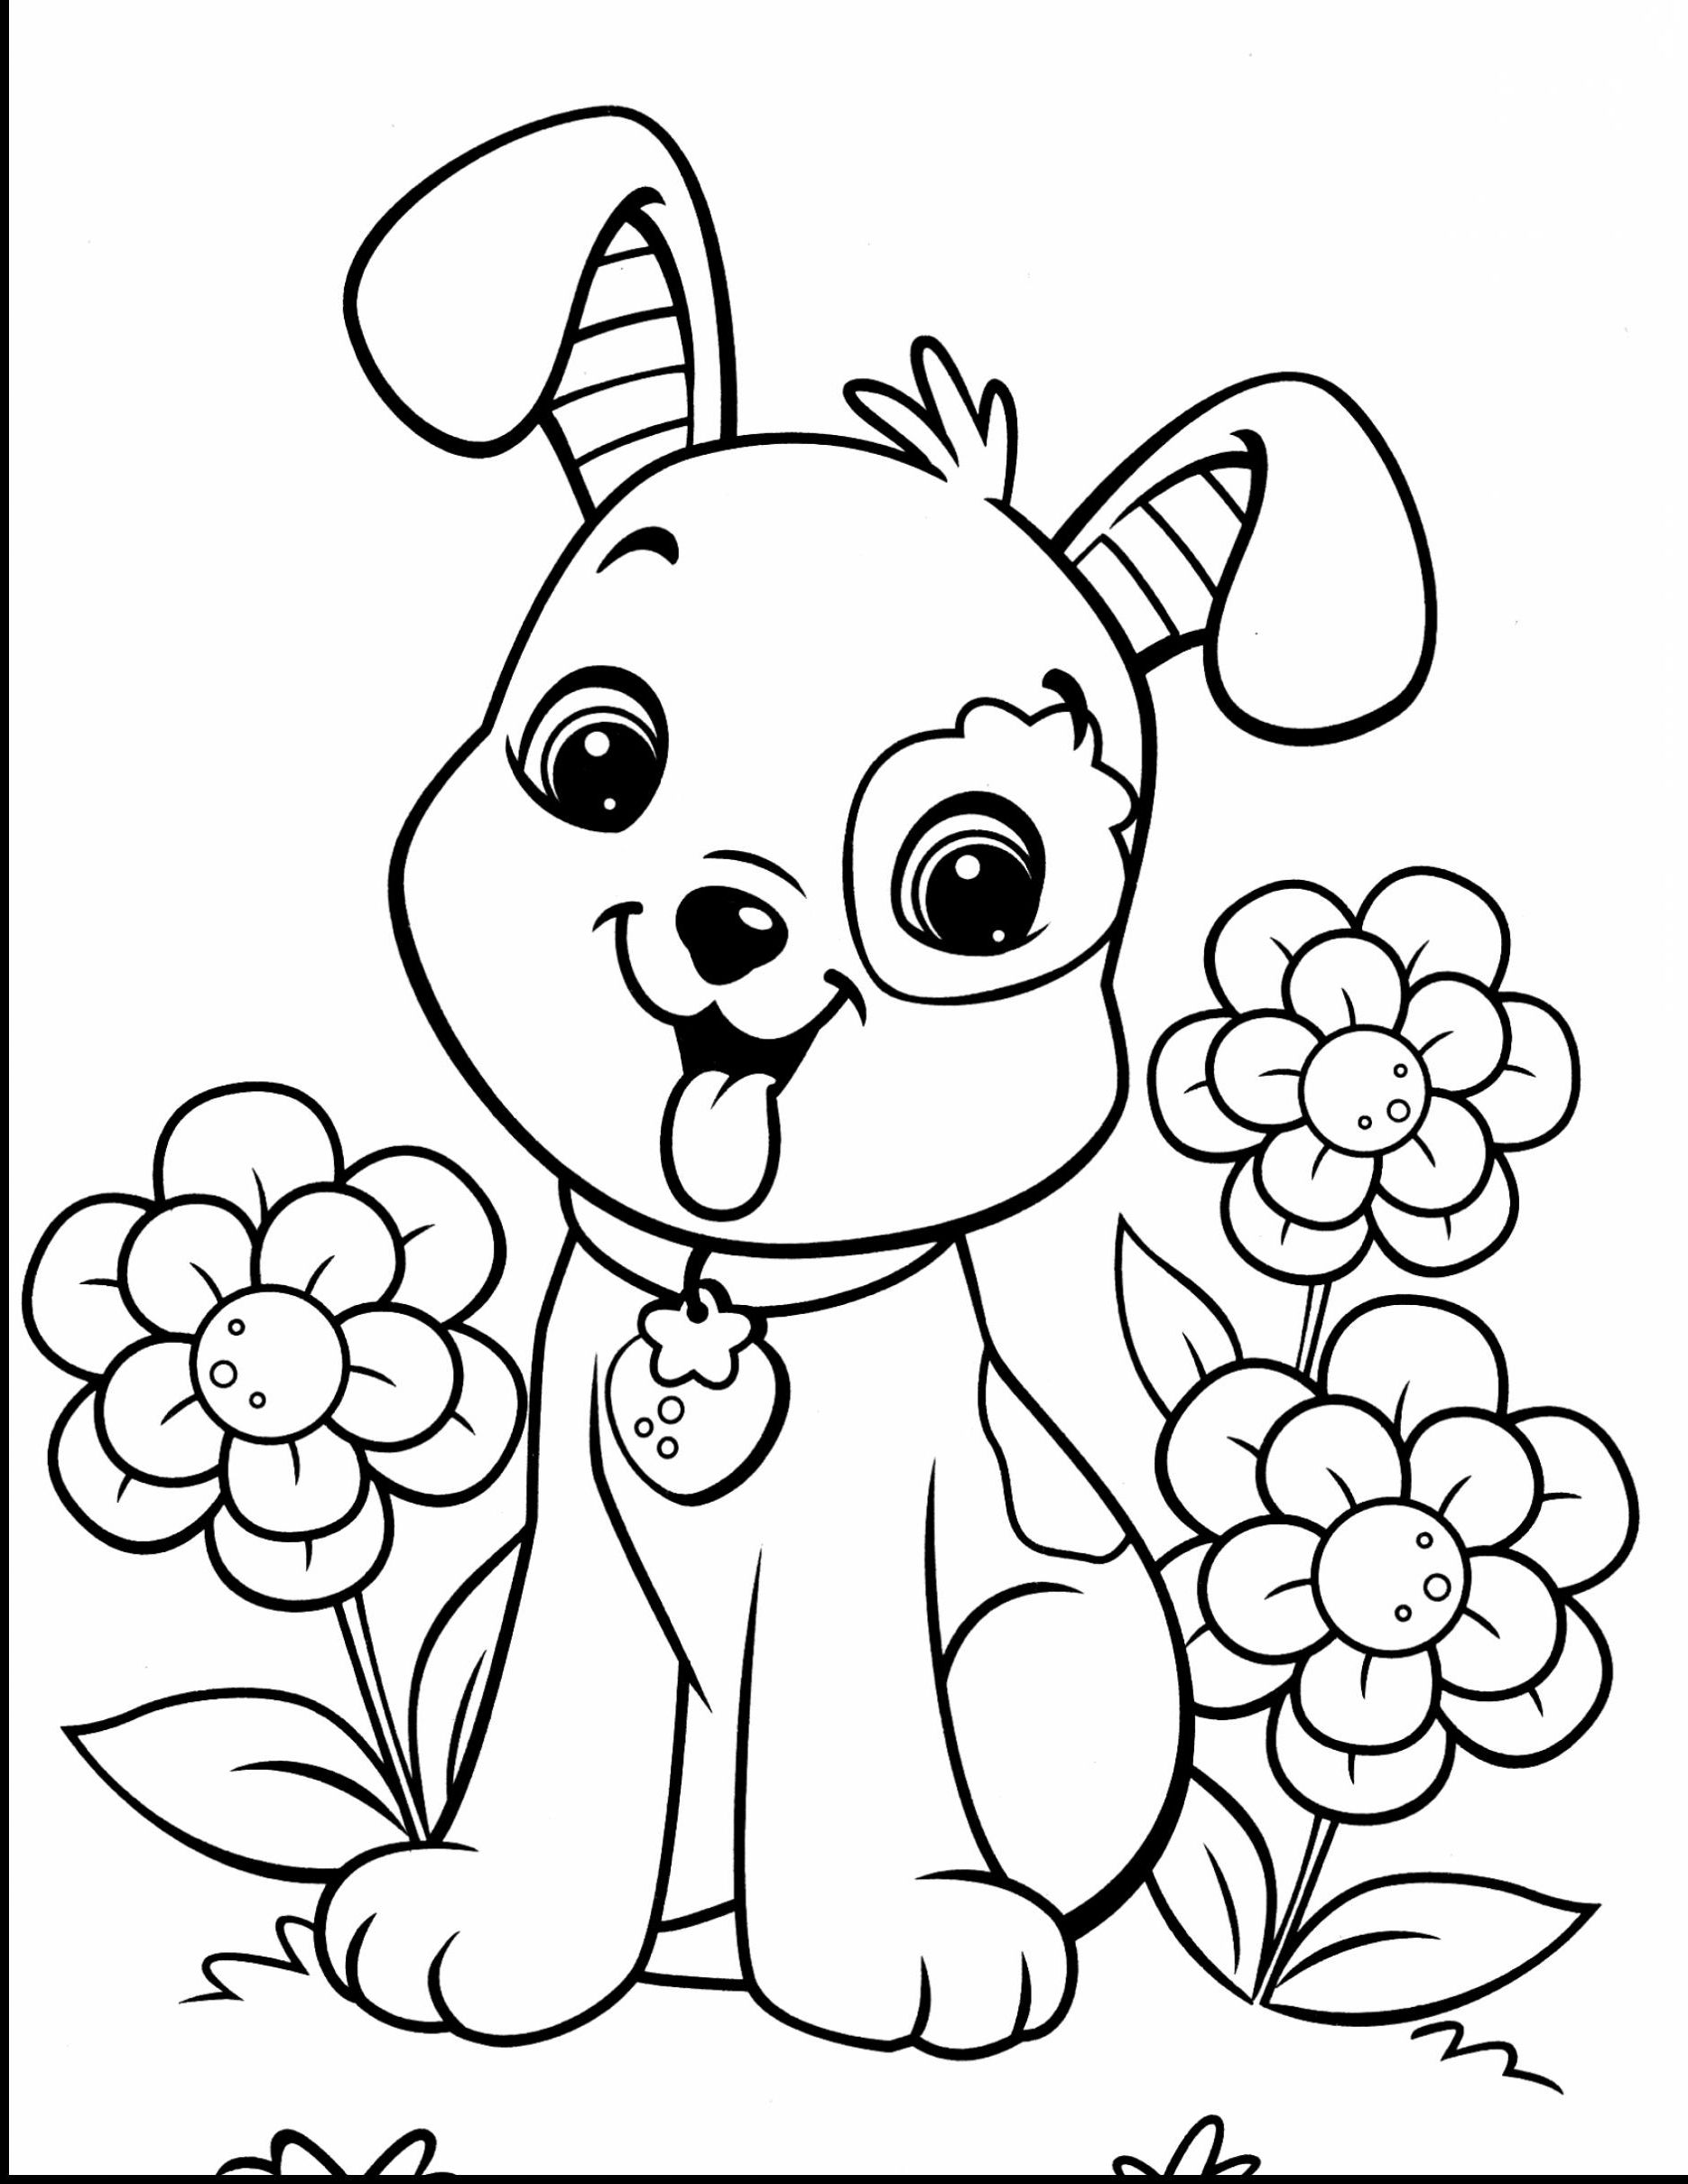 Dog Coloring Pages Puppy Coloring Pages Cute Coloring Pages Dog Coloring Page